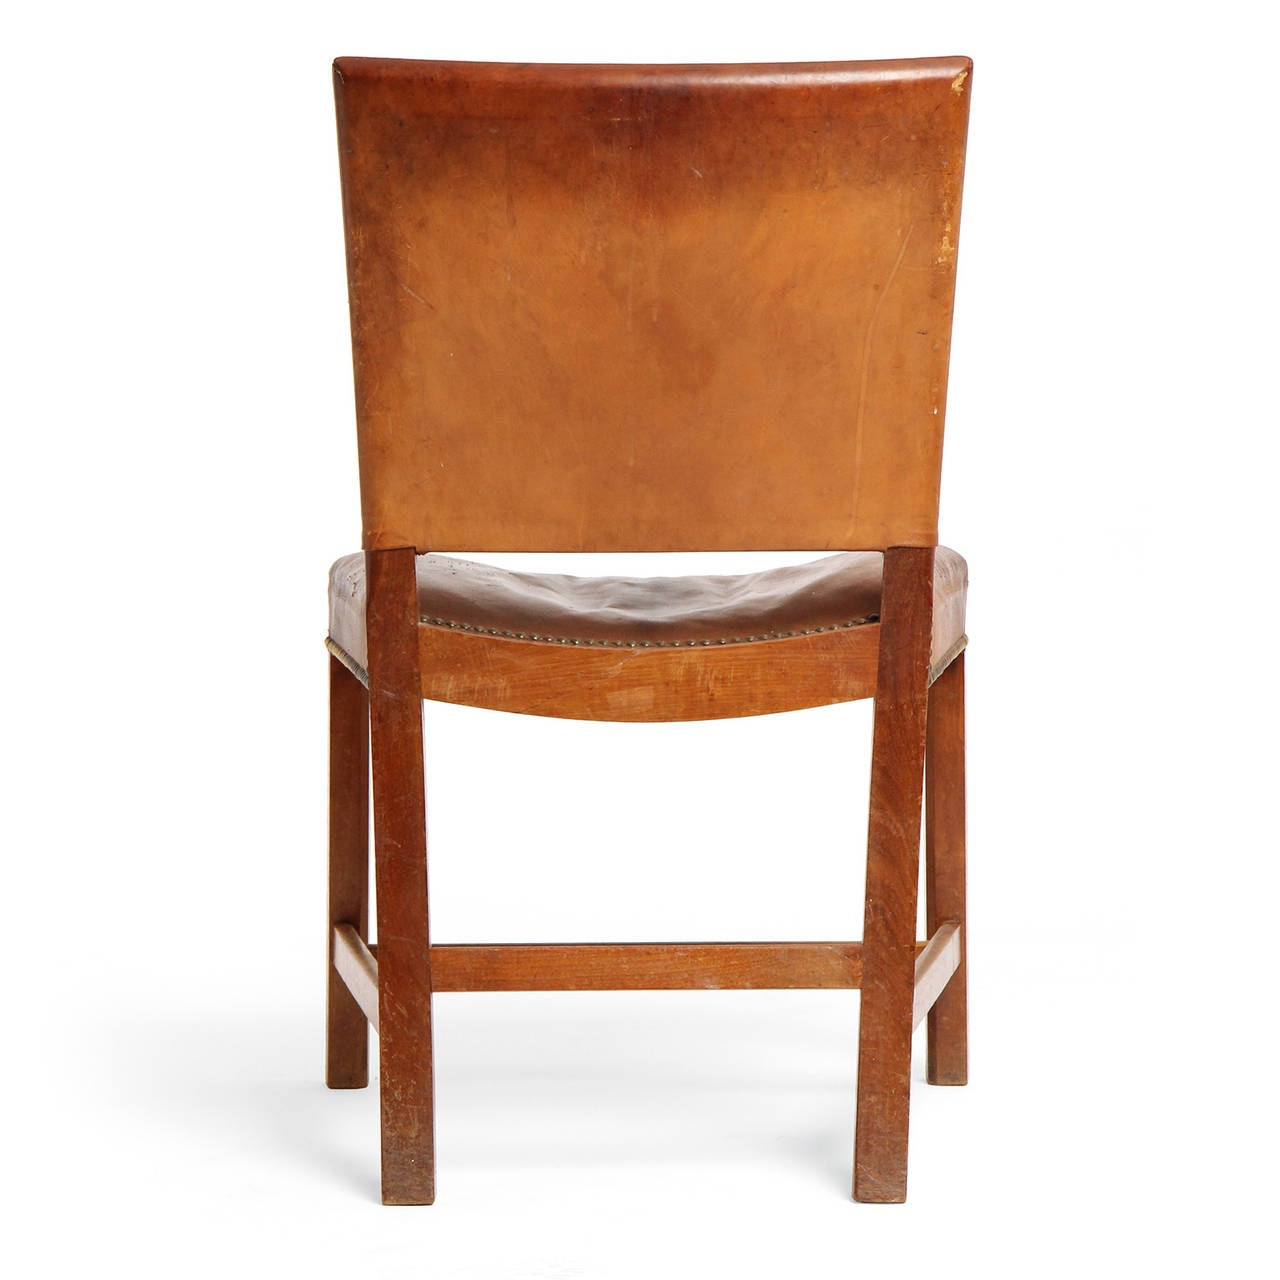 barcelona chairs for sale booster high chair seat by kaare klint at 1stdibs